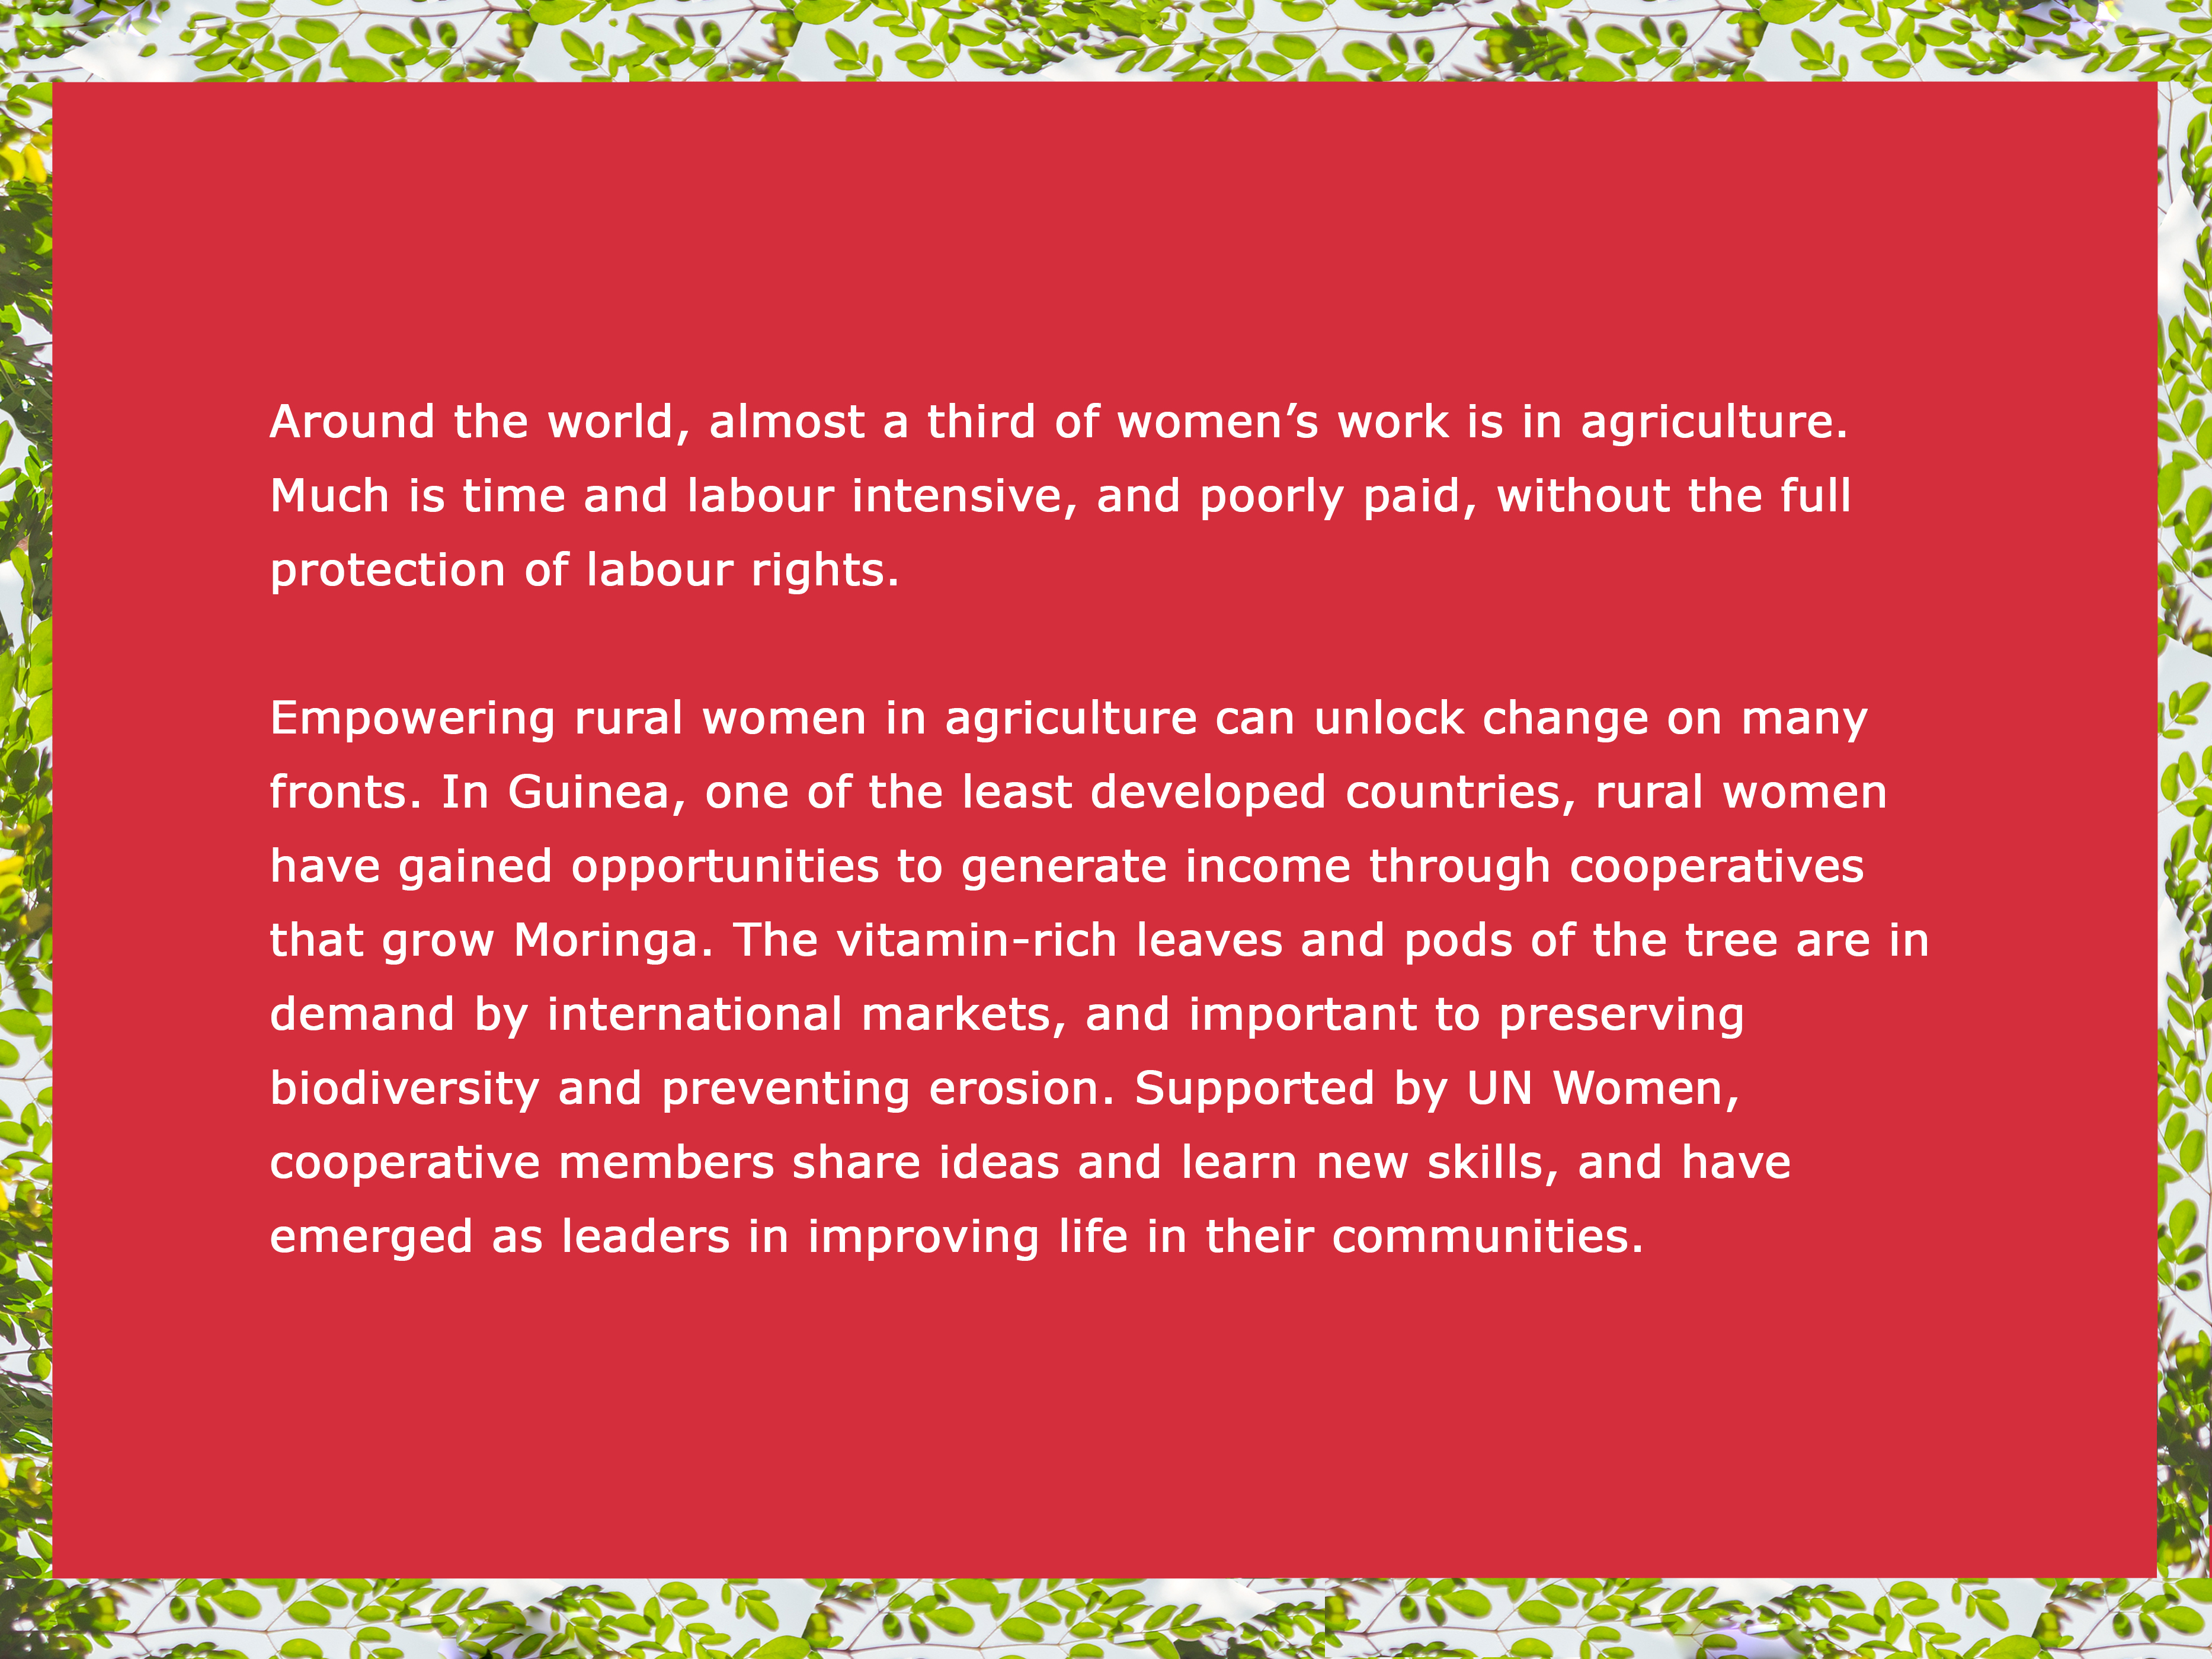 Around the world, almost a third of women's work is in agriculture.